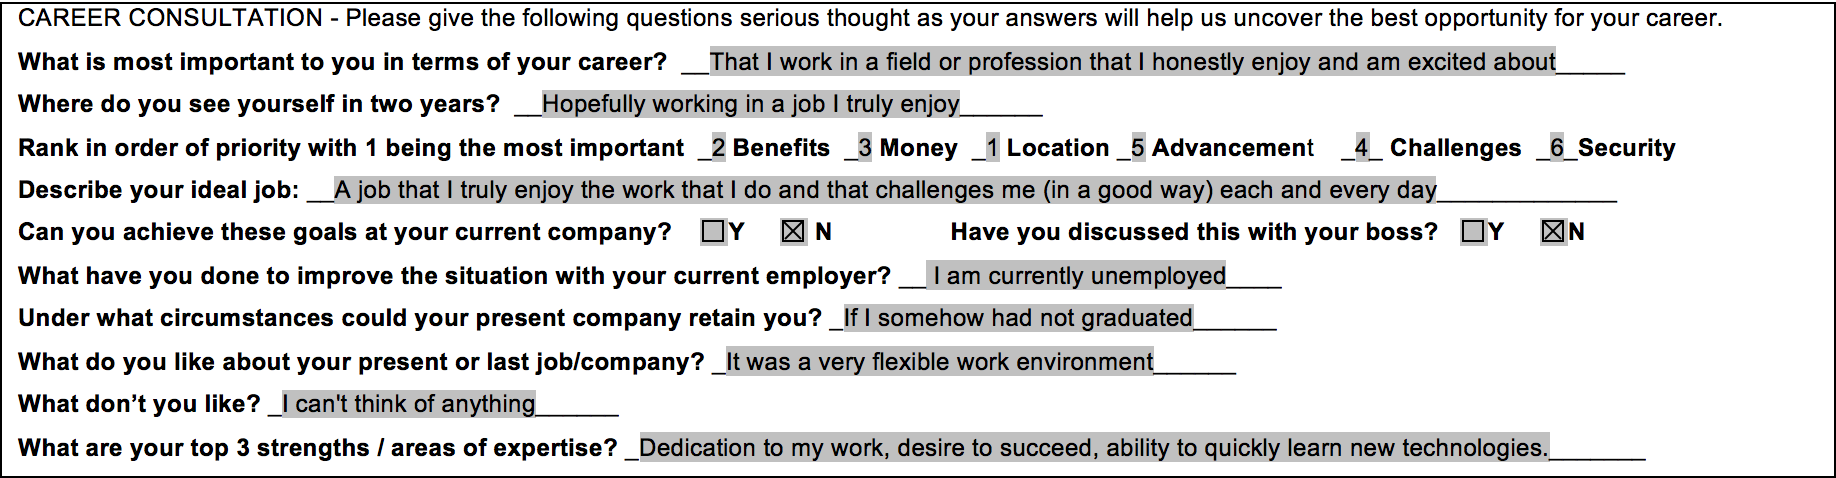 personal-profile-career-consultation.png